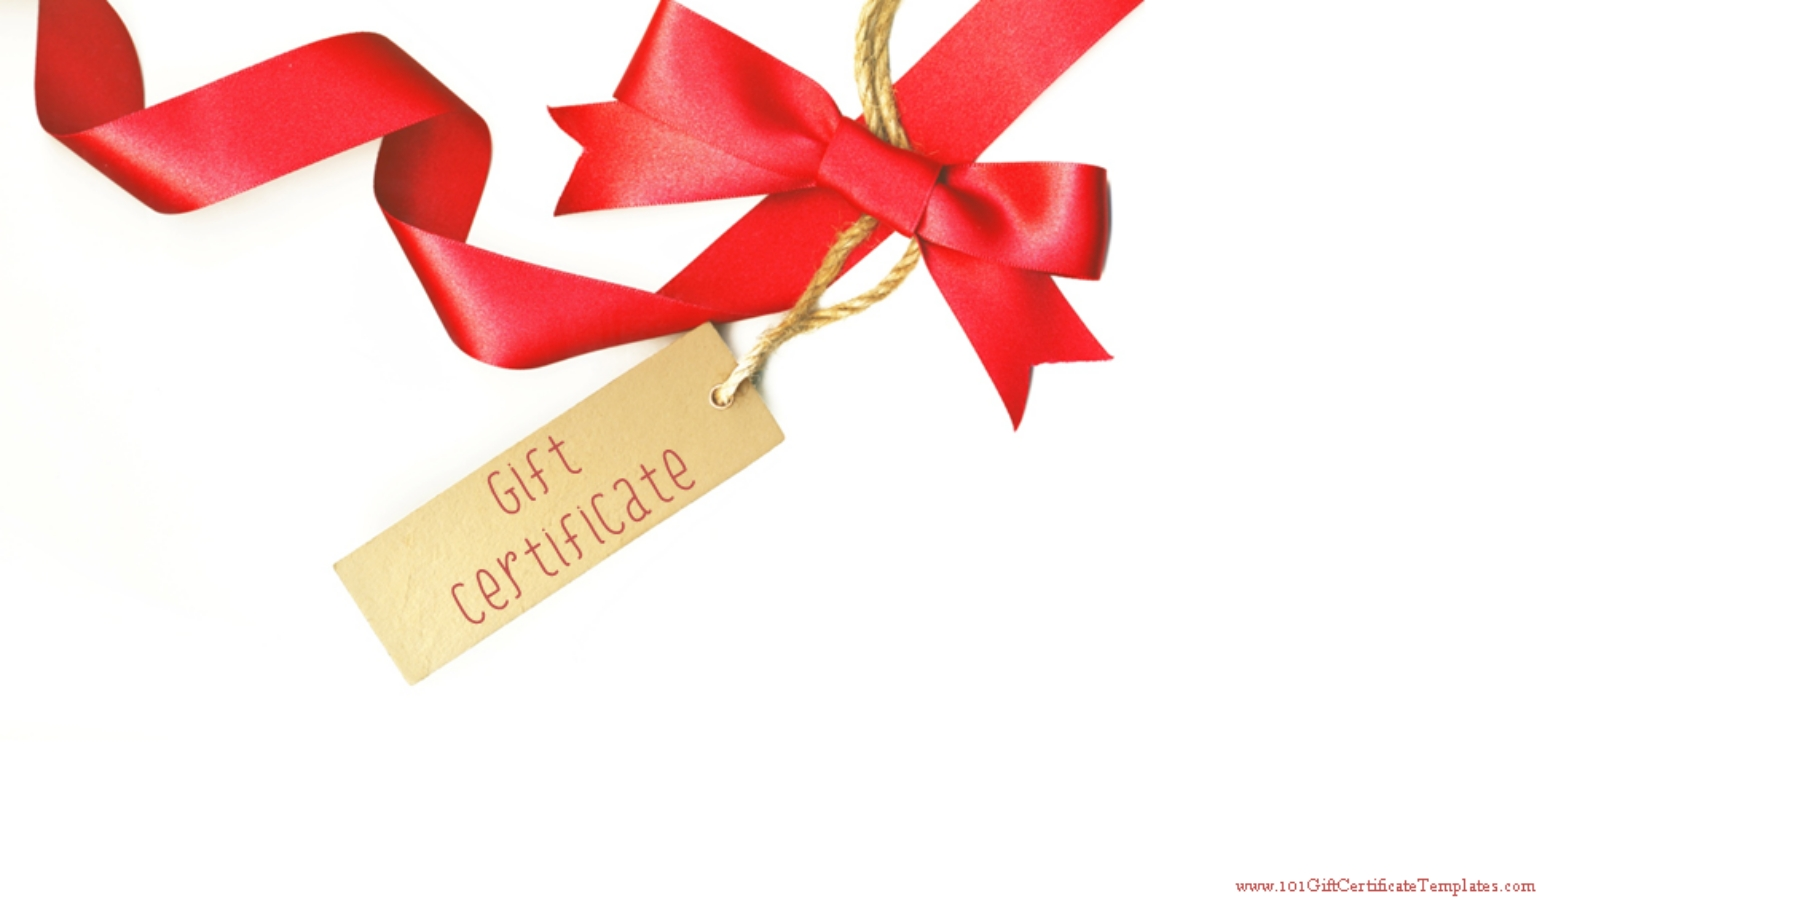 It's just an image of Crafty Gift Certificate Clip Art